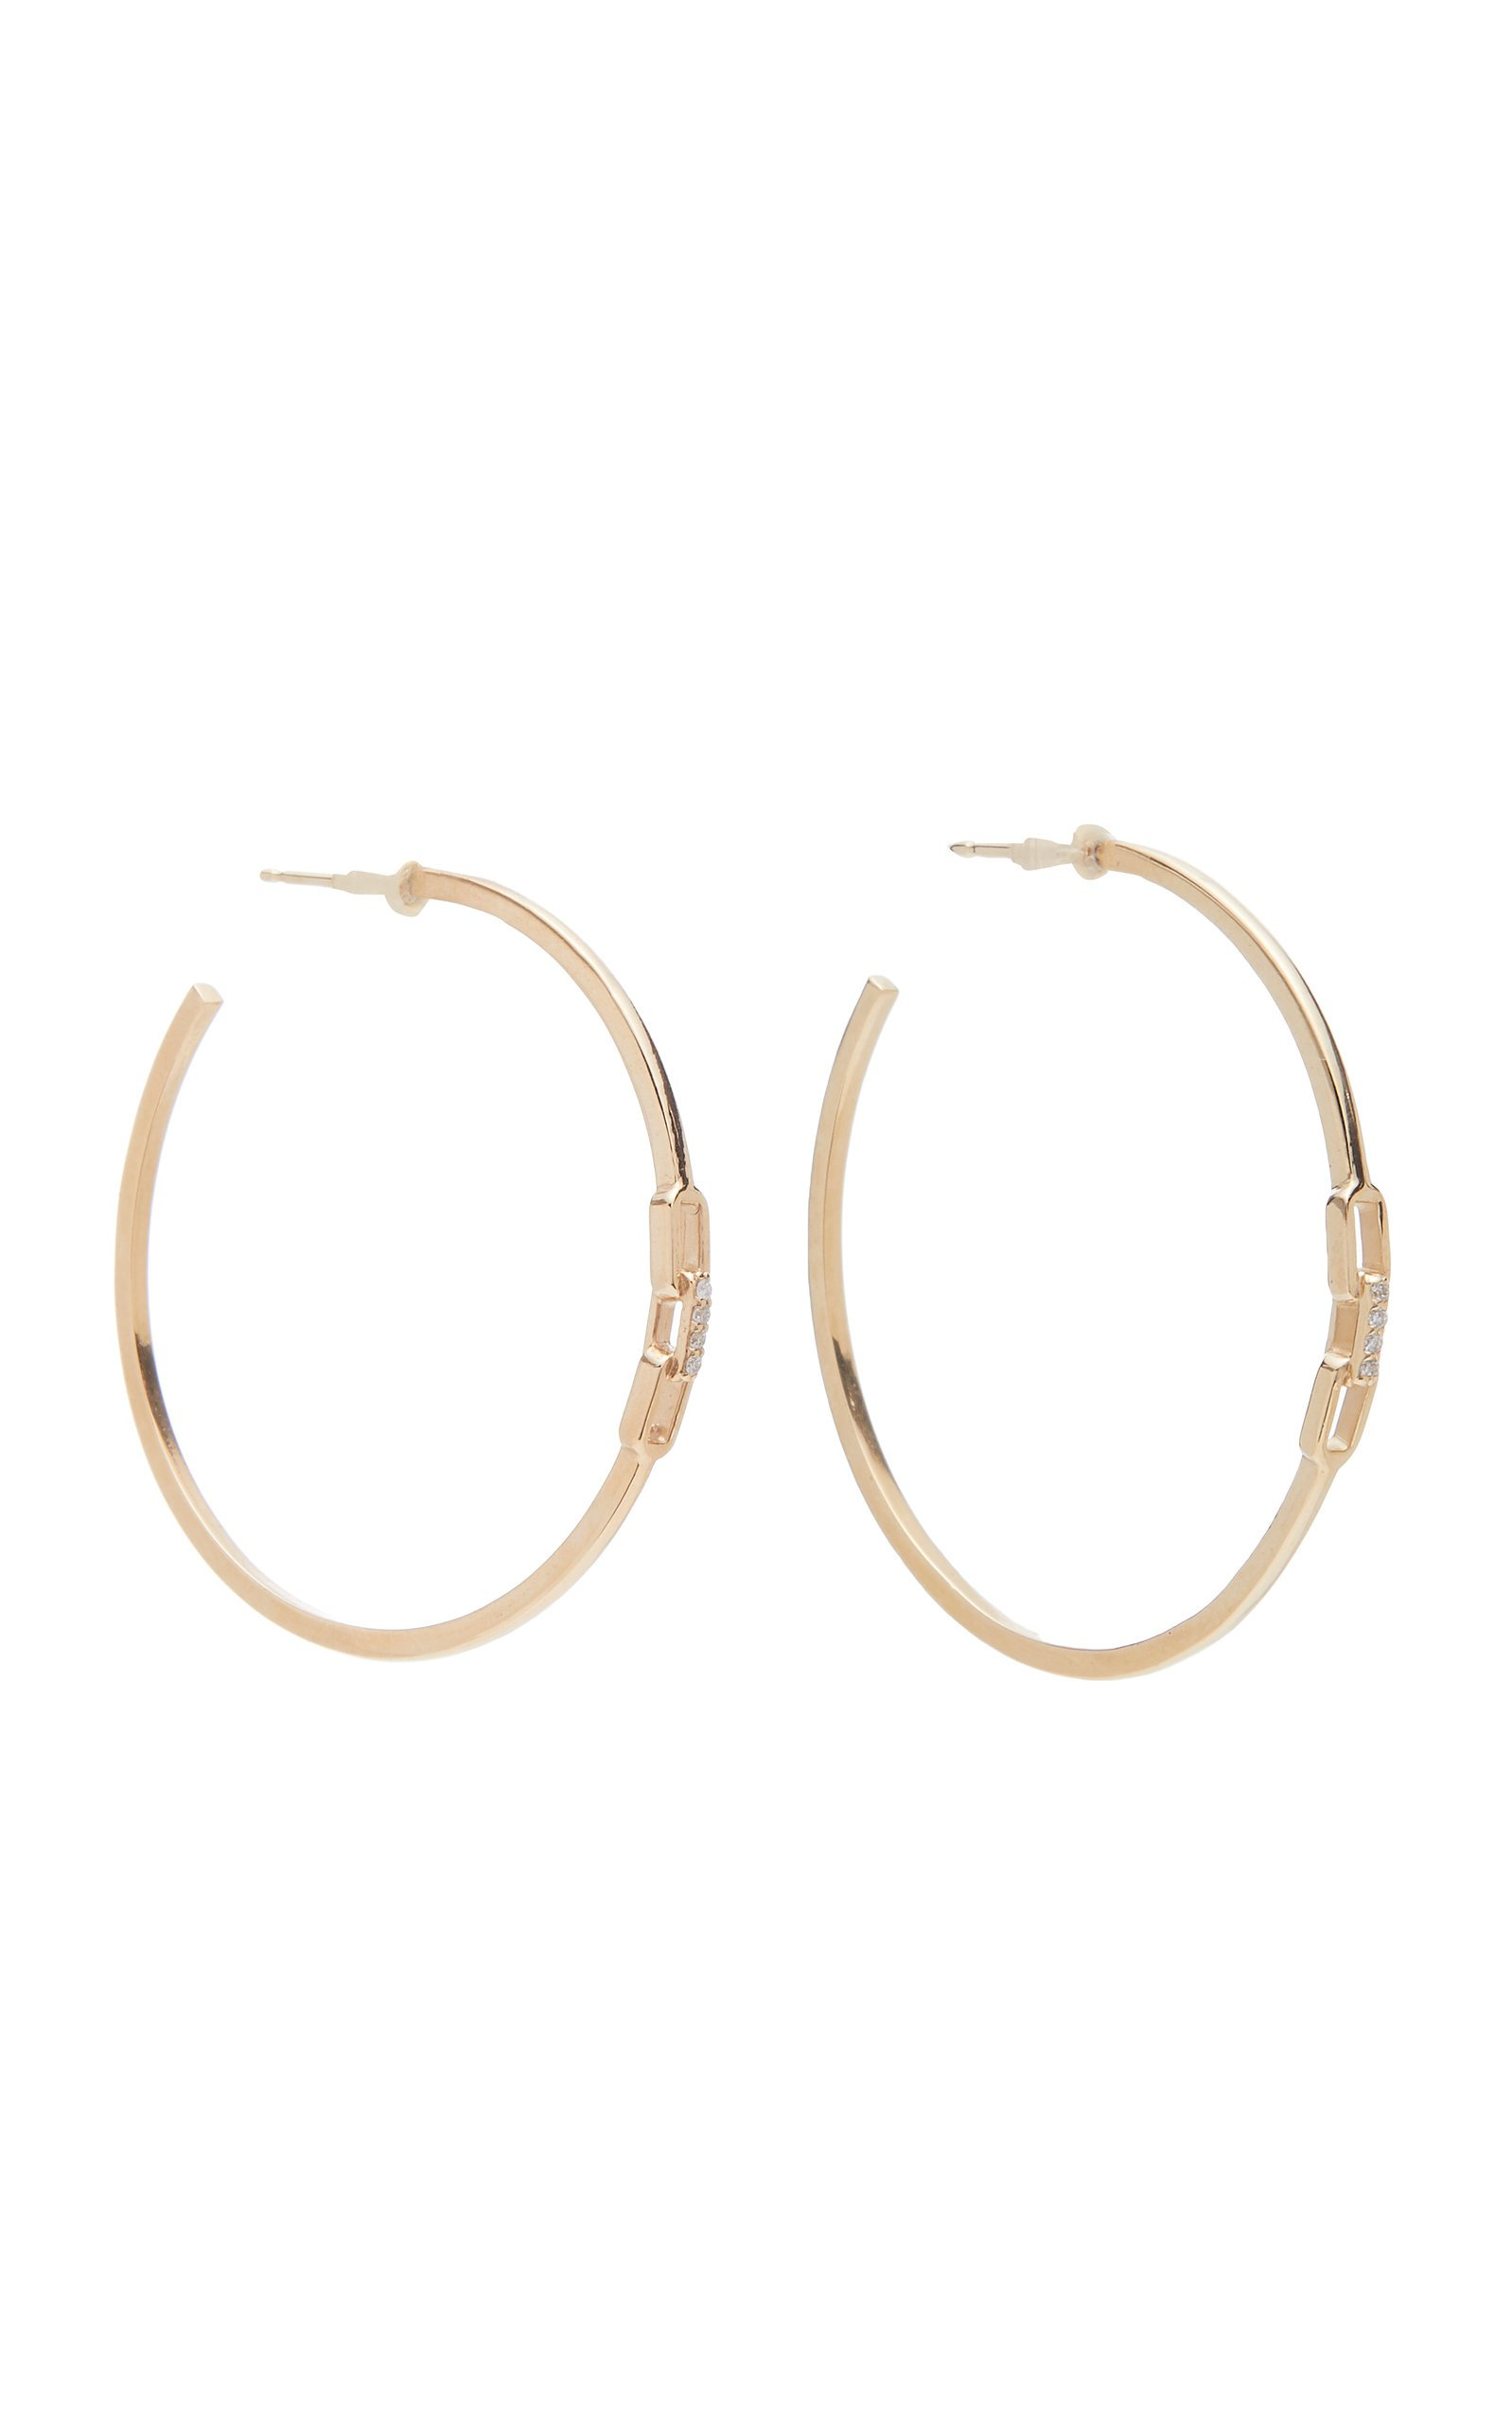 Sophie Ratner 14K Gold Diamond Hoop Earrings